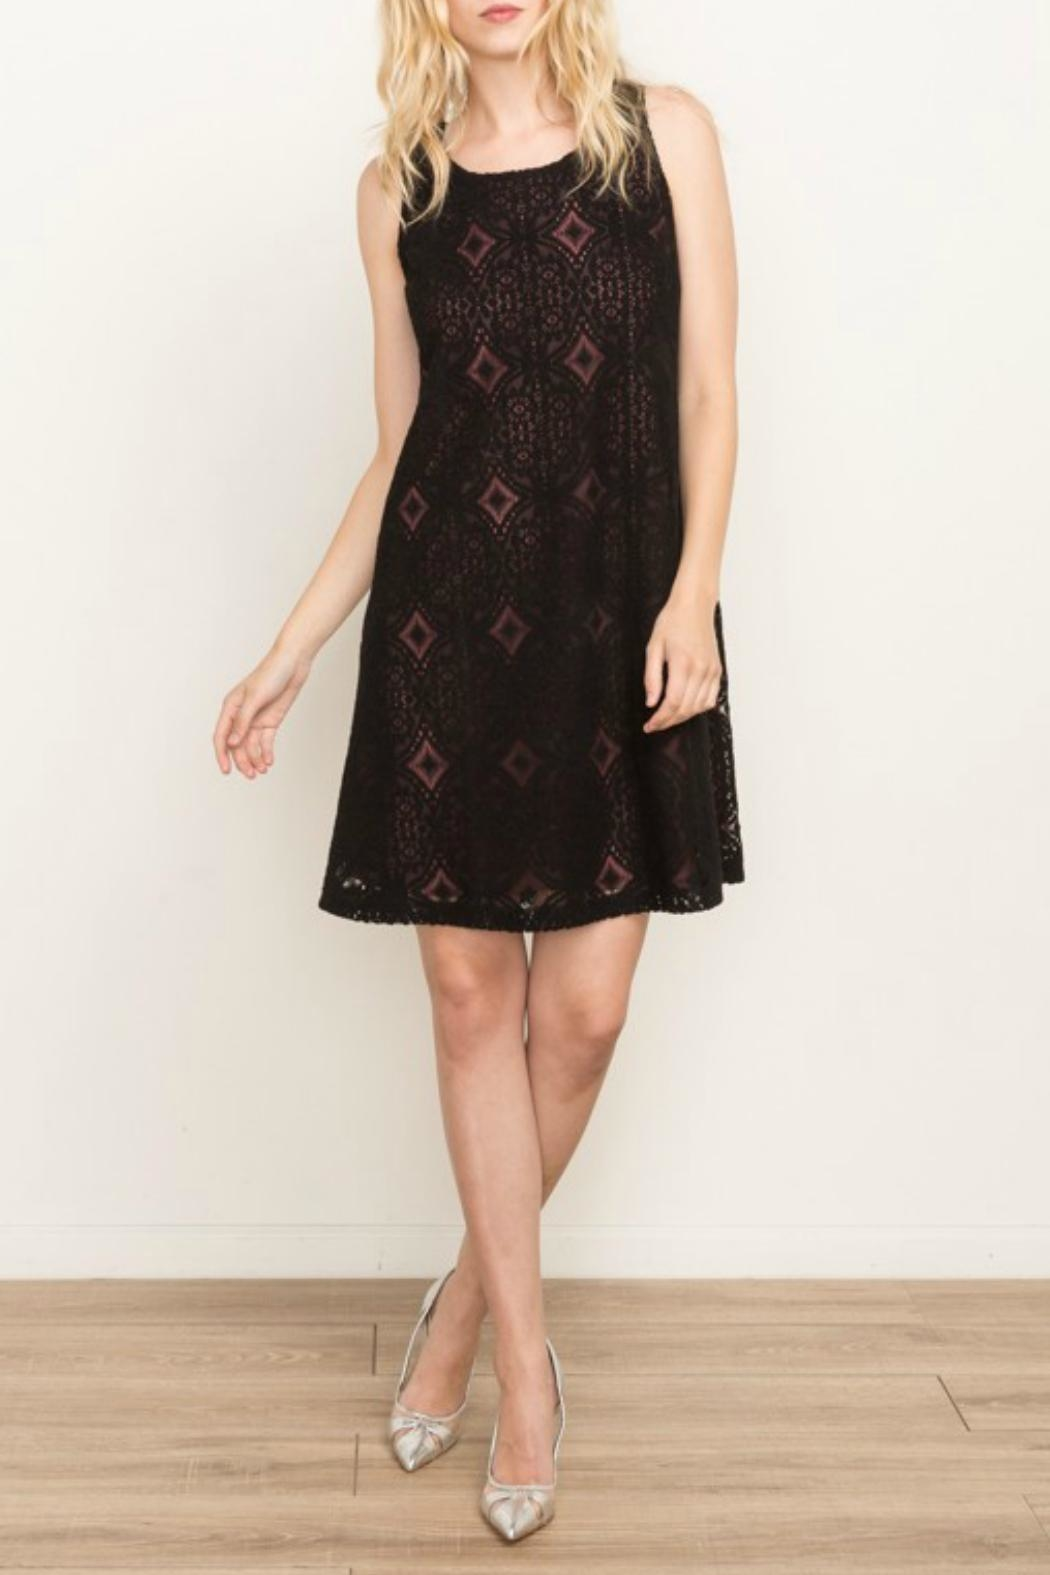 Mystree Lace-Up Shift Dress - Main Image